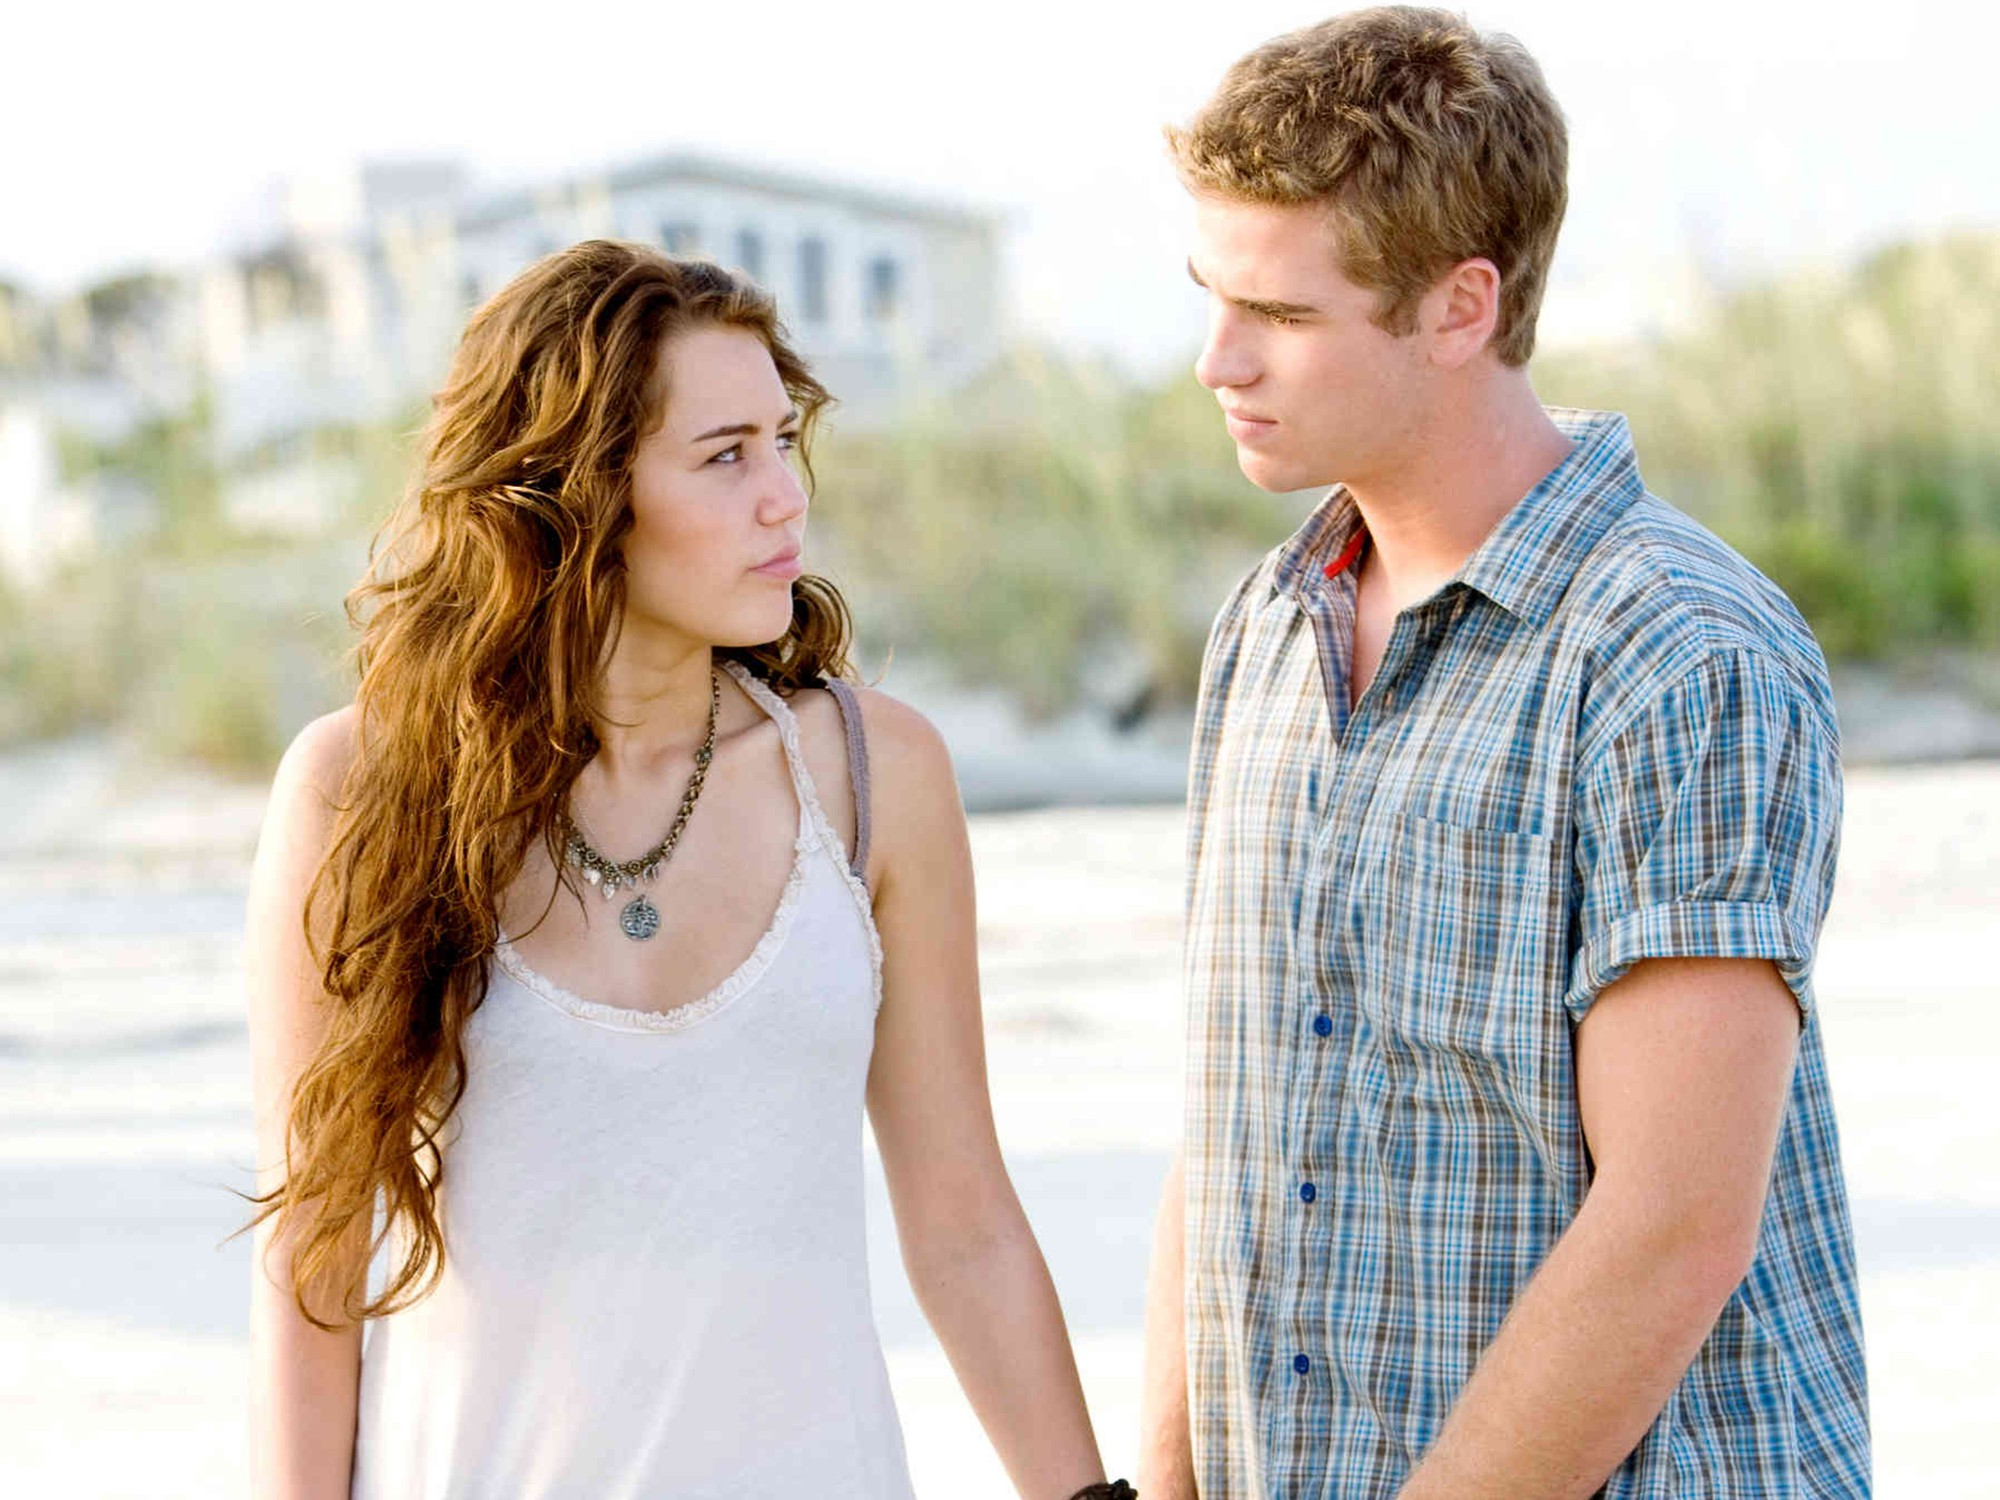 Liam Hemsworth - Liam Hemsworth: Beautiful as a god, he married her 7 years older, she got married too - Photo 16.